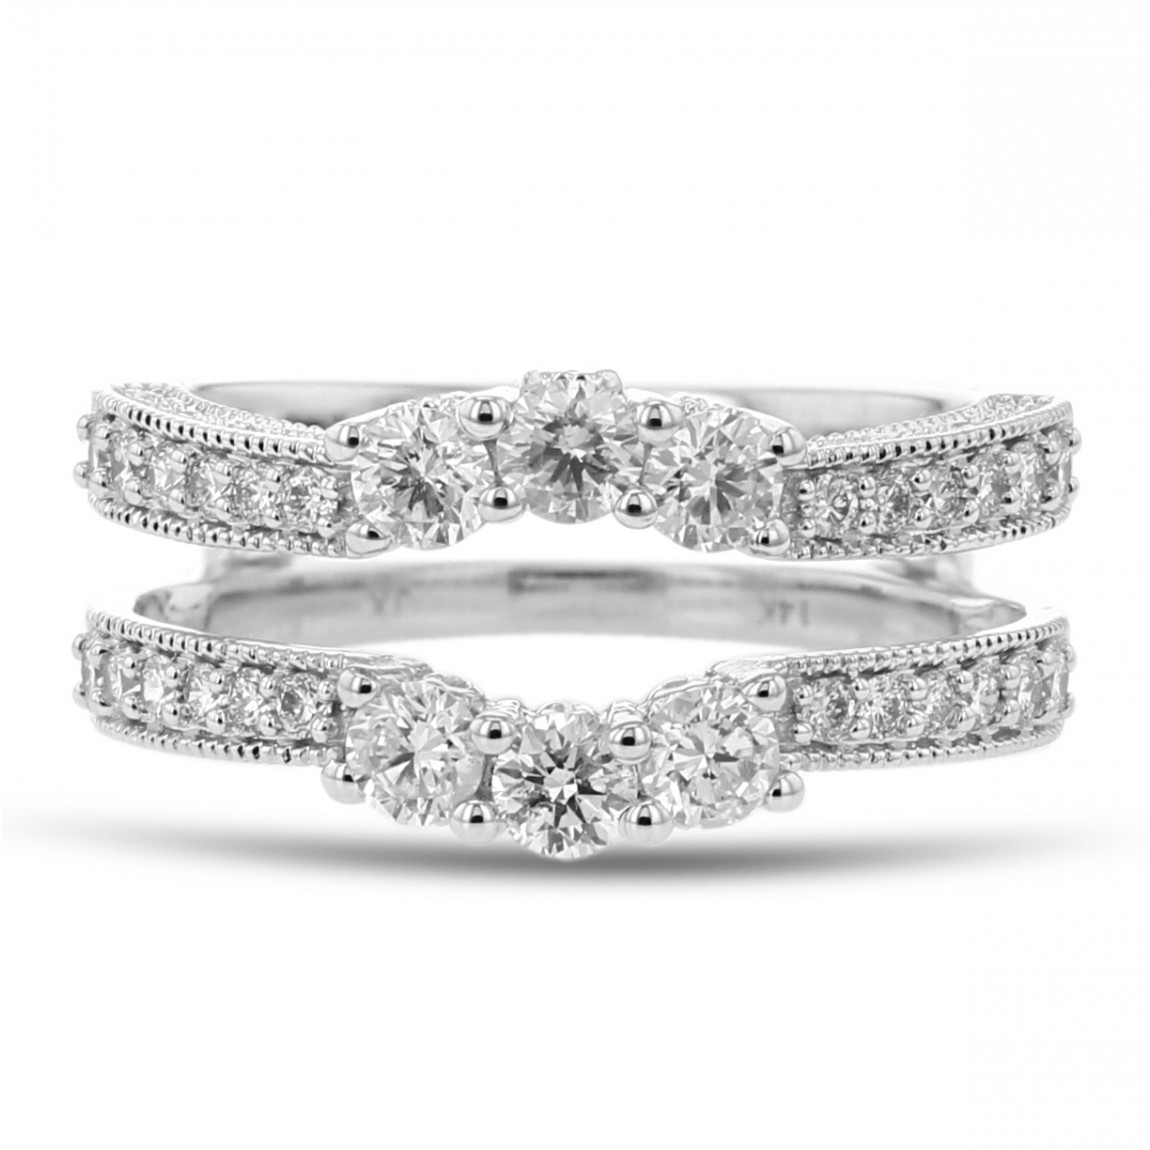 Diamond Cradle Wedding Band, Ring Enhancer, Milgrain Trio, 14k White Gold, (View 6 of 25)